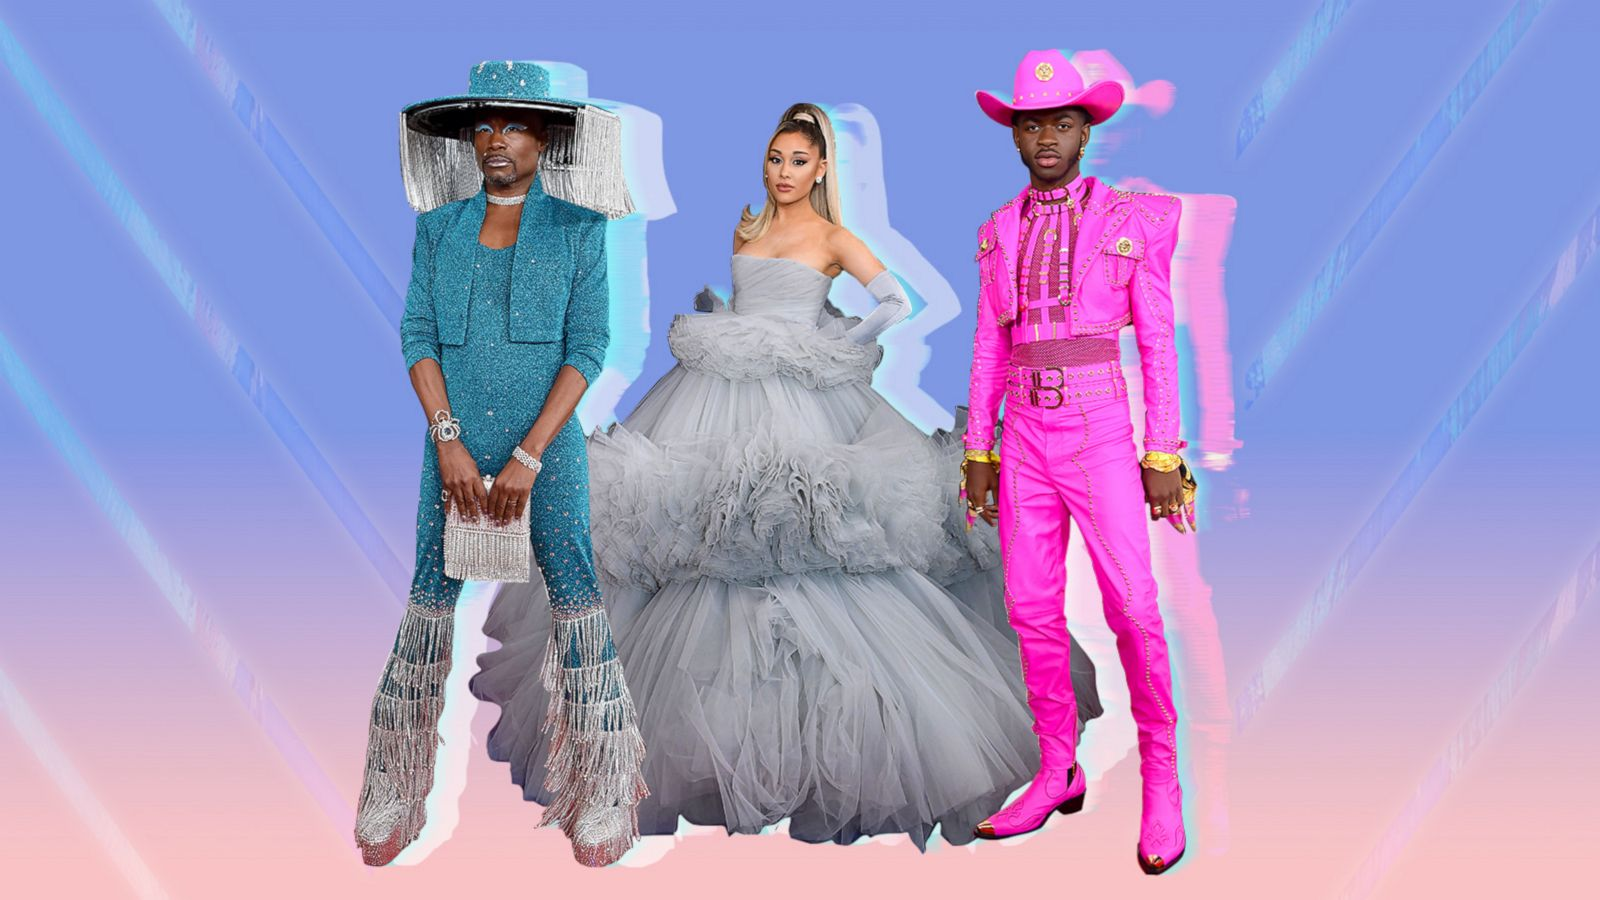 free download 2020 grammy awards over the top looks from ariana grande billy 1600x900 for your desktop mobile tablet explore 49 2020 grammy winners wallpapers 2020 grammy winners wallpapers wallpapersafari